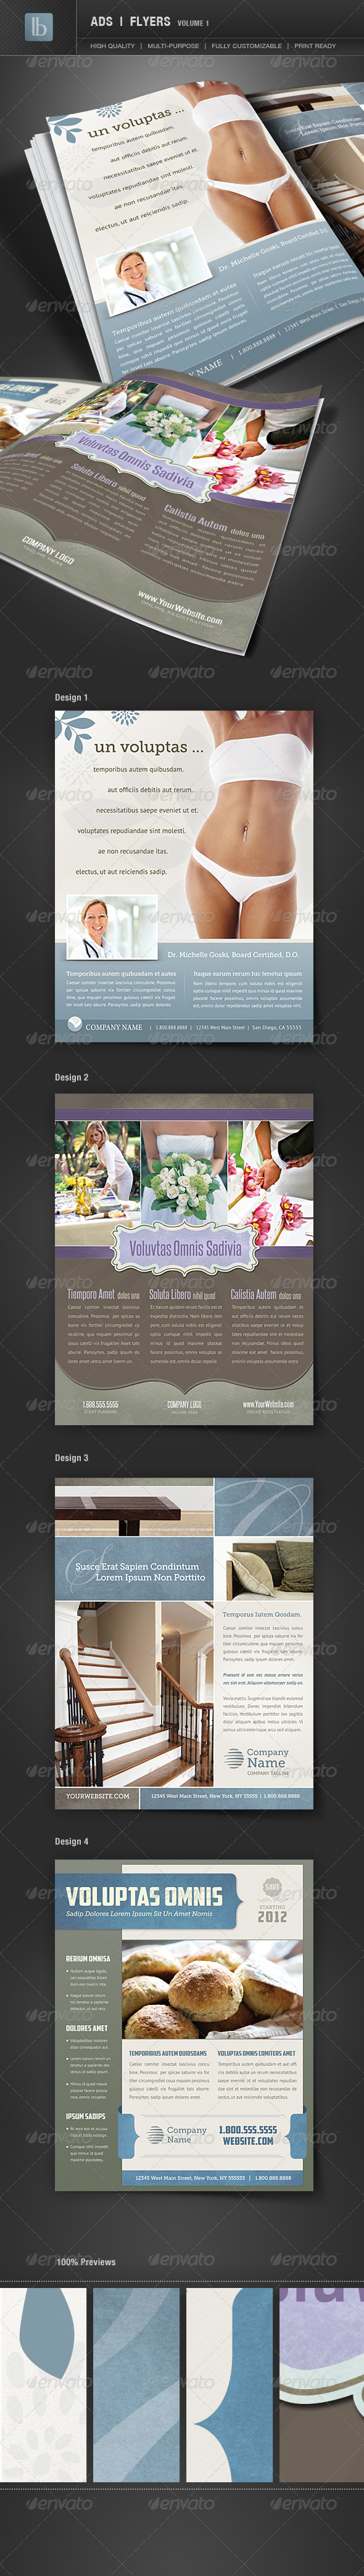 GraphicRiver Ads Business Flyers Volume 1 1182905